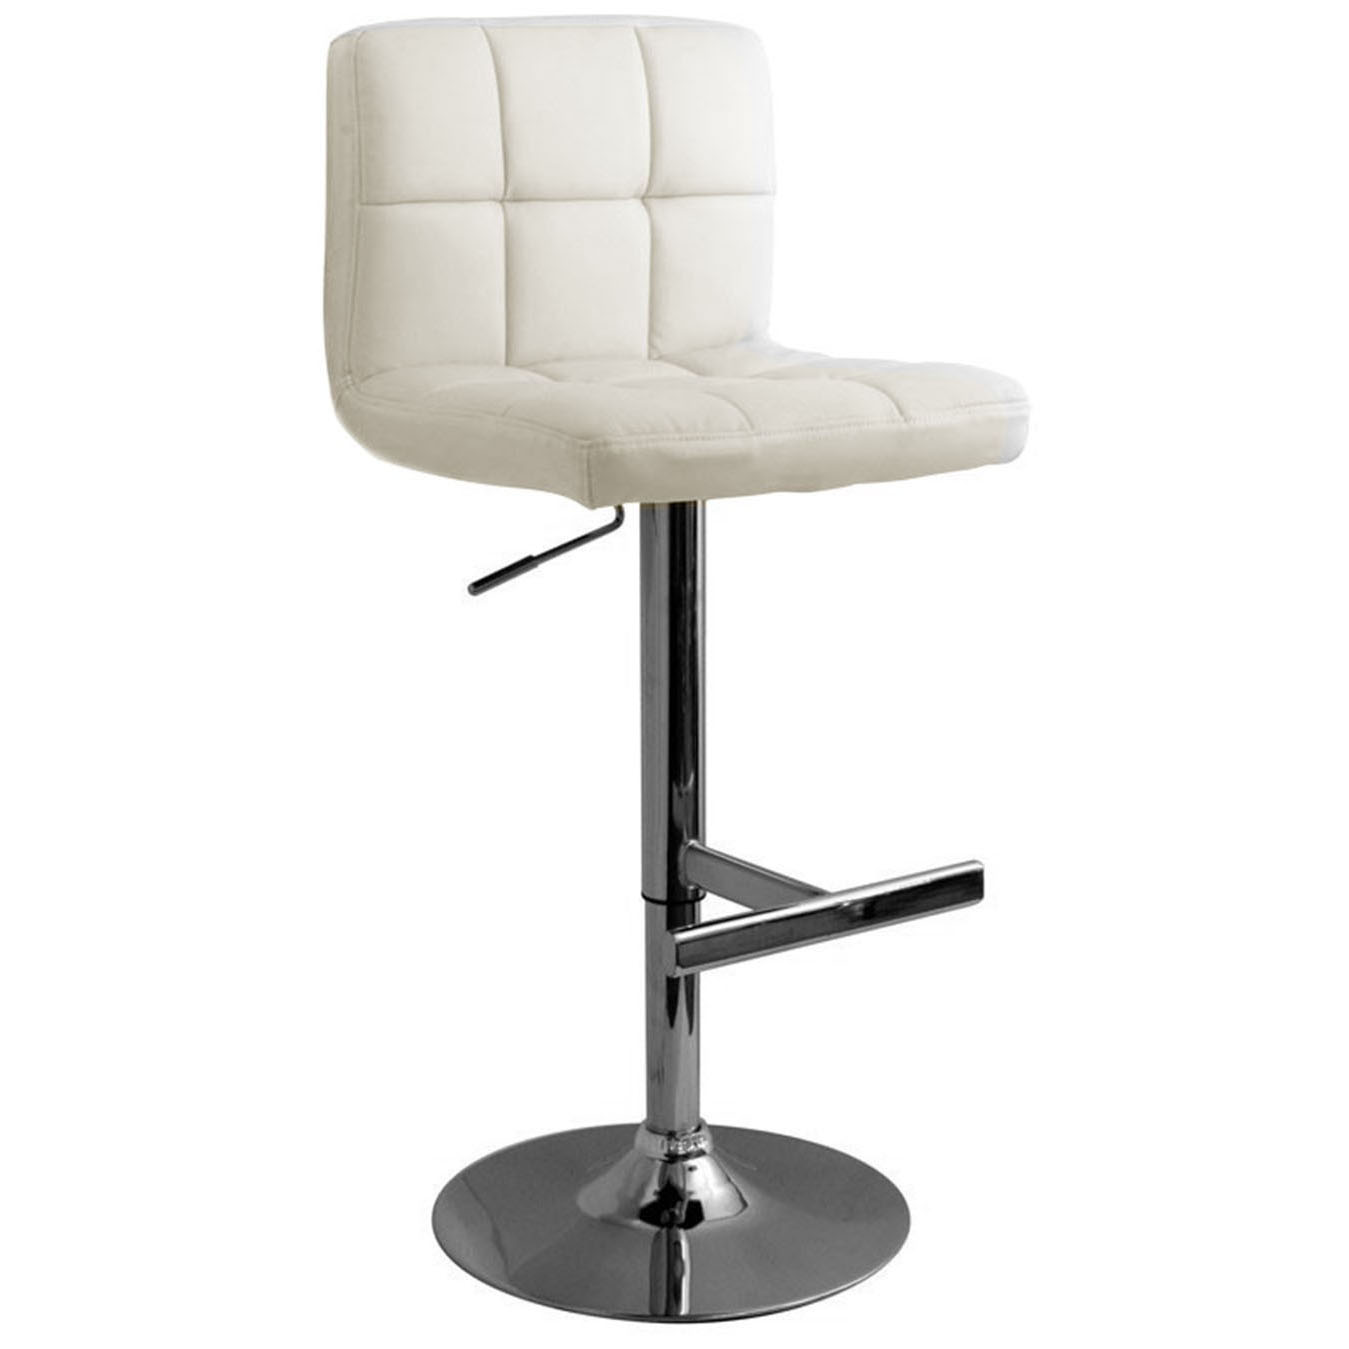 Allegro Brushed Bar Stool - White Product Image